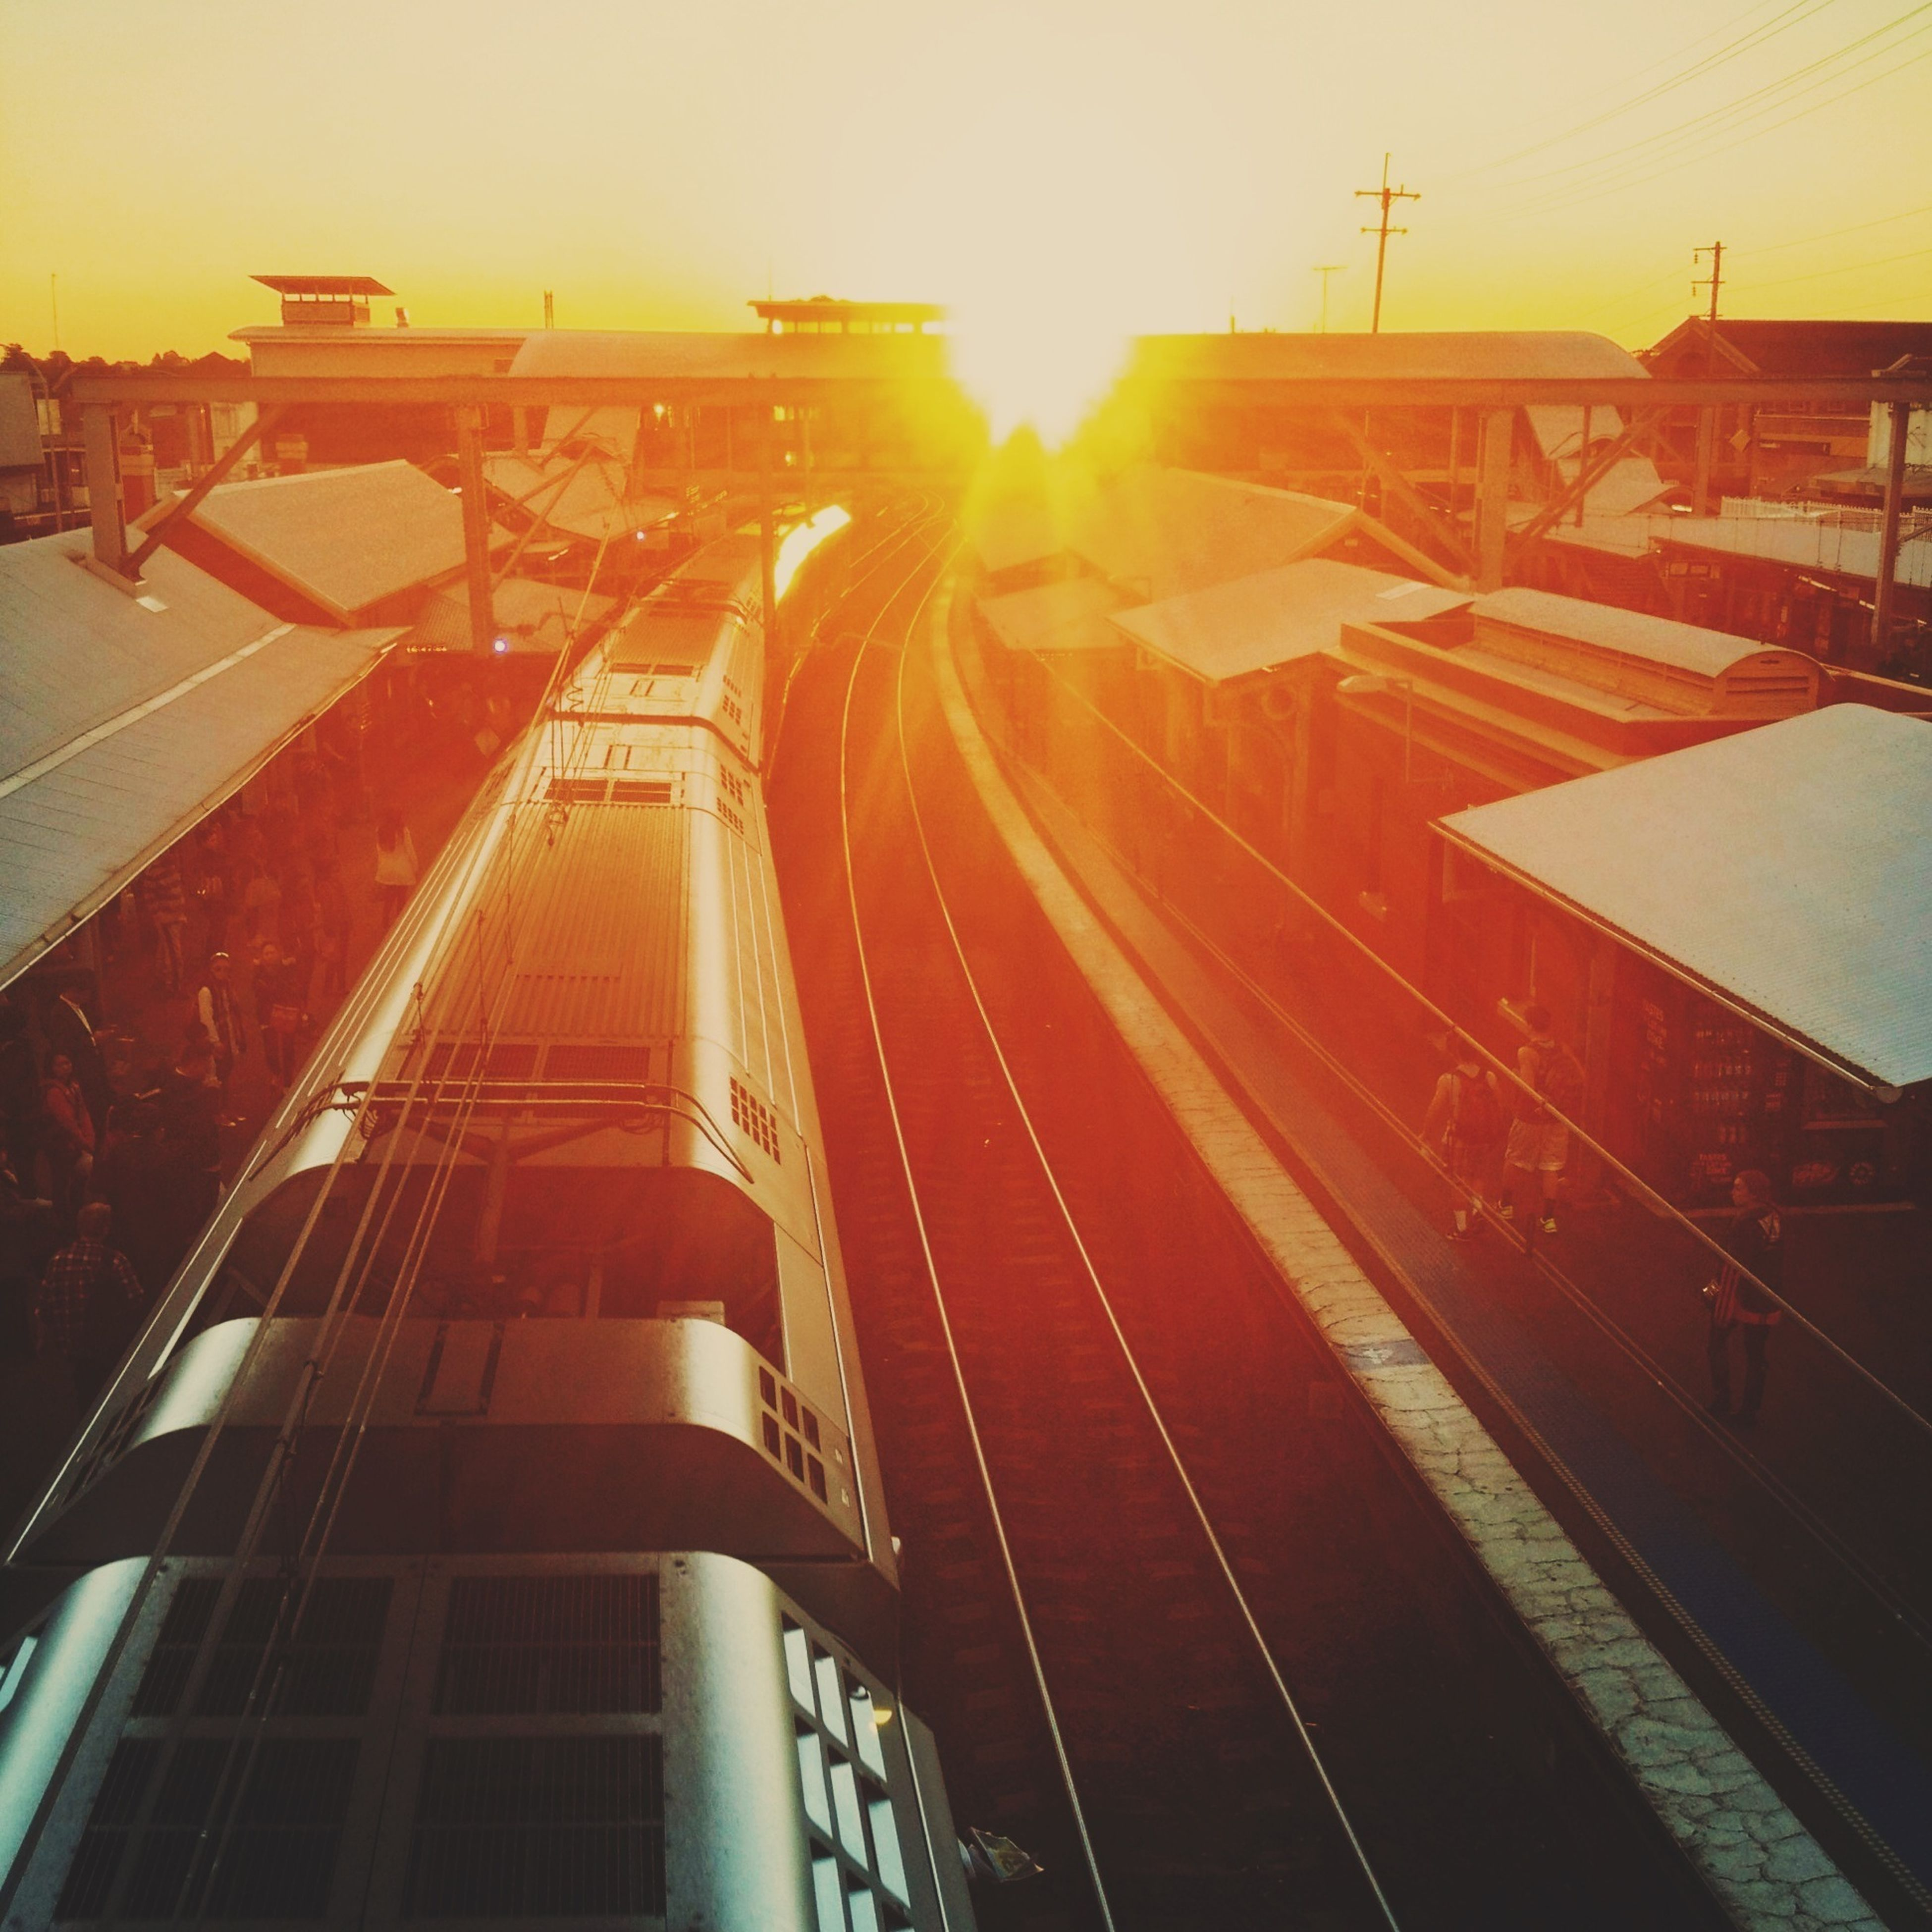 transportation, railroad track, architecture, building exterior, built structure, public transportation, rail transportation, city, mode of transport, sunset, railroad station, sunlight, high angle view, sun, railroad station platform, sky, lens flare, the way forward, outdoors, city life